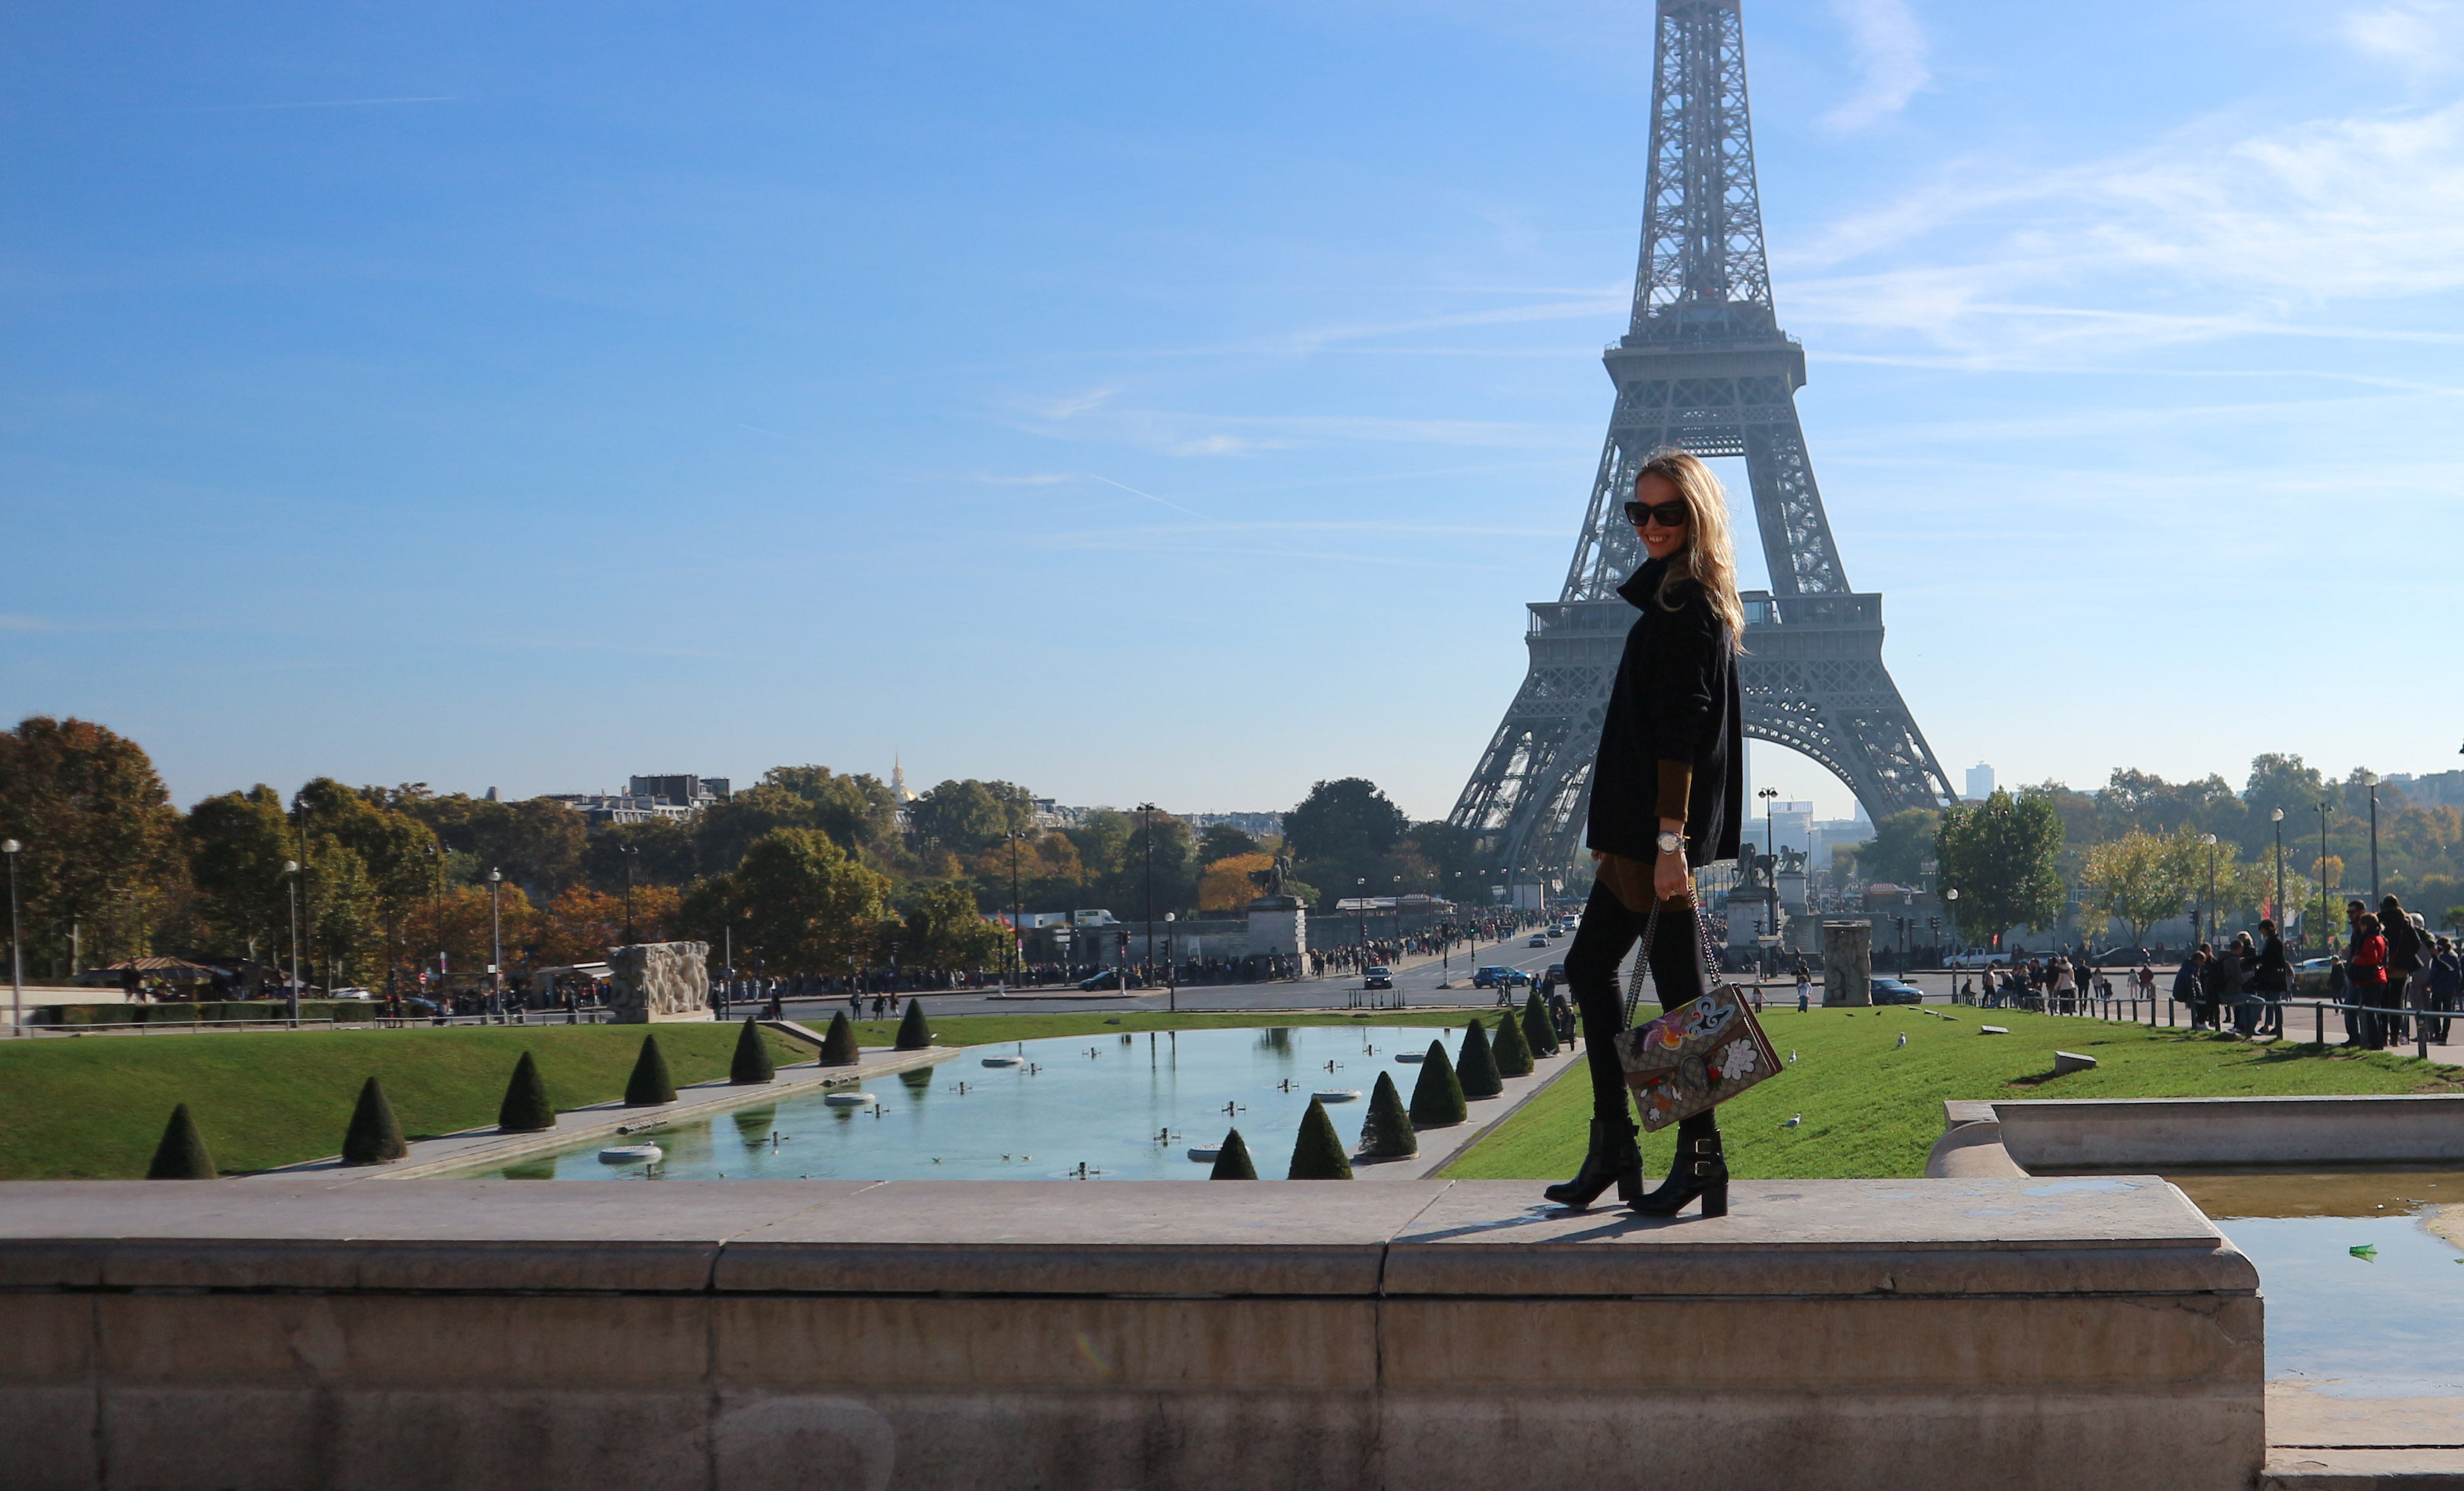 what wearing during a trip in paris